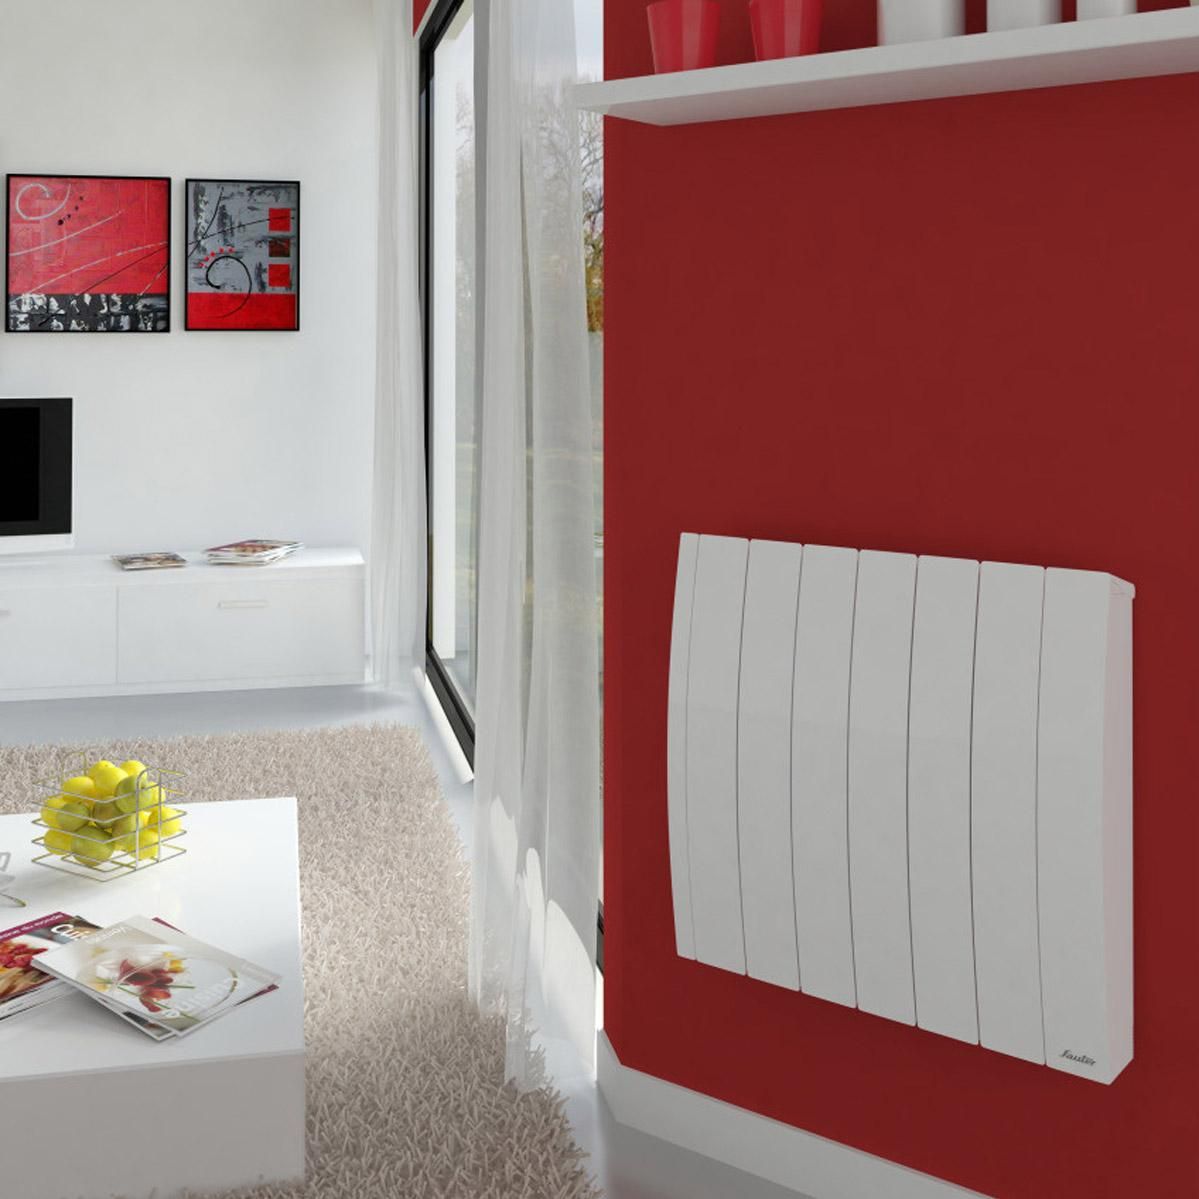 radiateur lectrique inertie fluide sauter bachata 2000 w leroy merlin. Black Bedroom Furniture Sets. Home Design Ideas